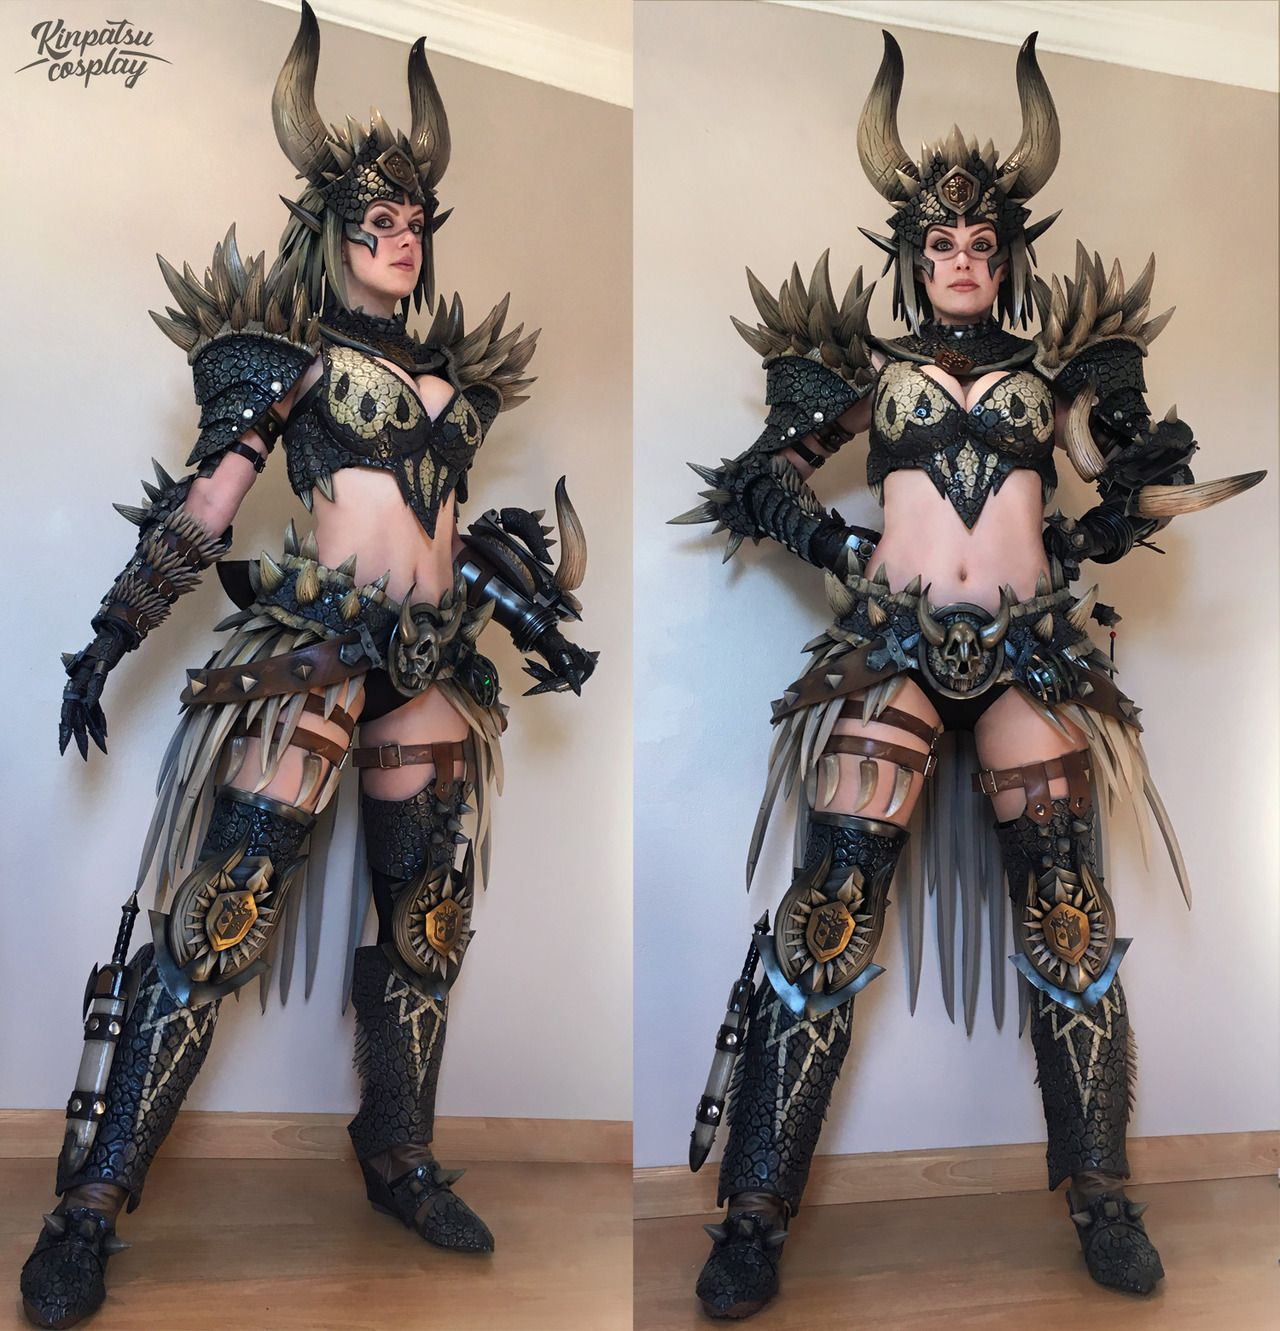 kinpatsu cosplay — nergigante monster hunter armor! | love girls in